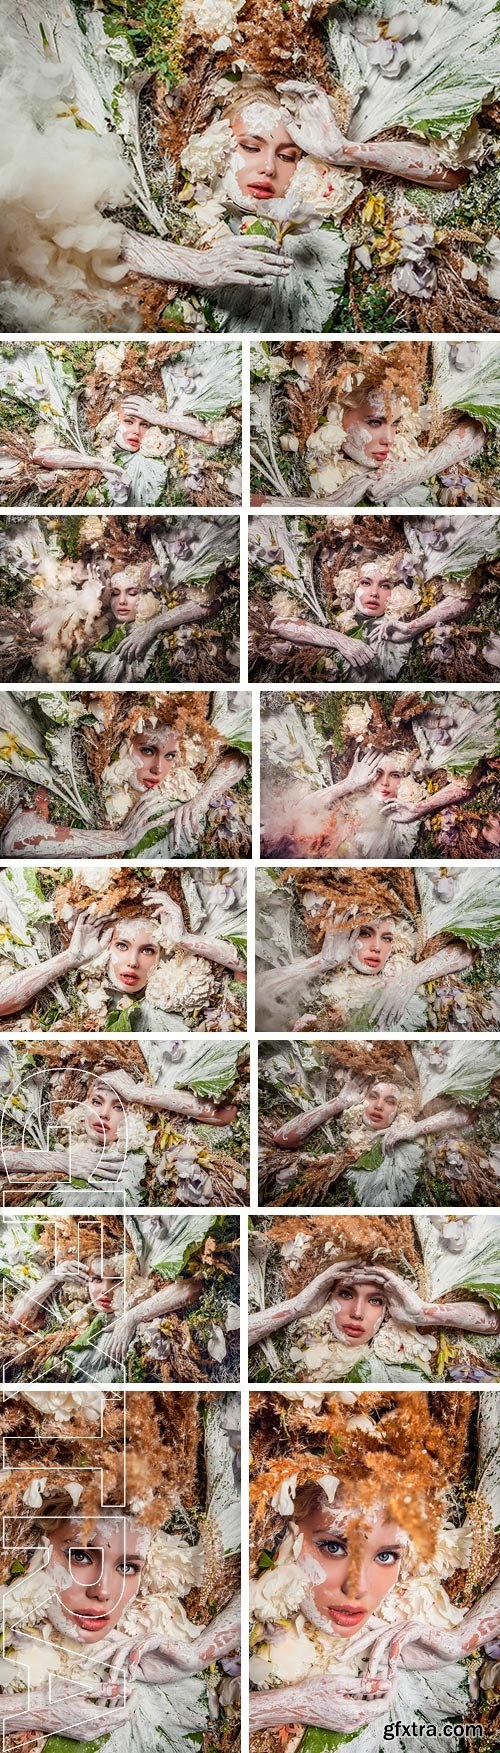 Stock Photos - Fairy tale girl portrait surrounded with natural plants and flowers. Art image in bright fantasy stylization